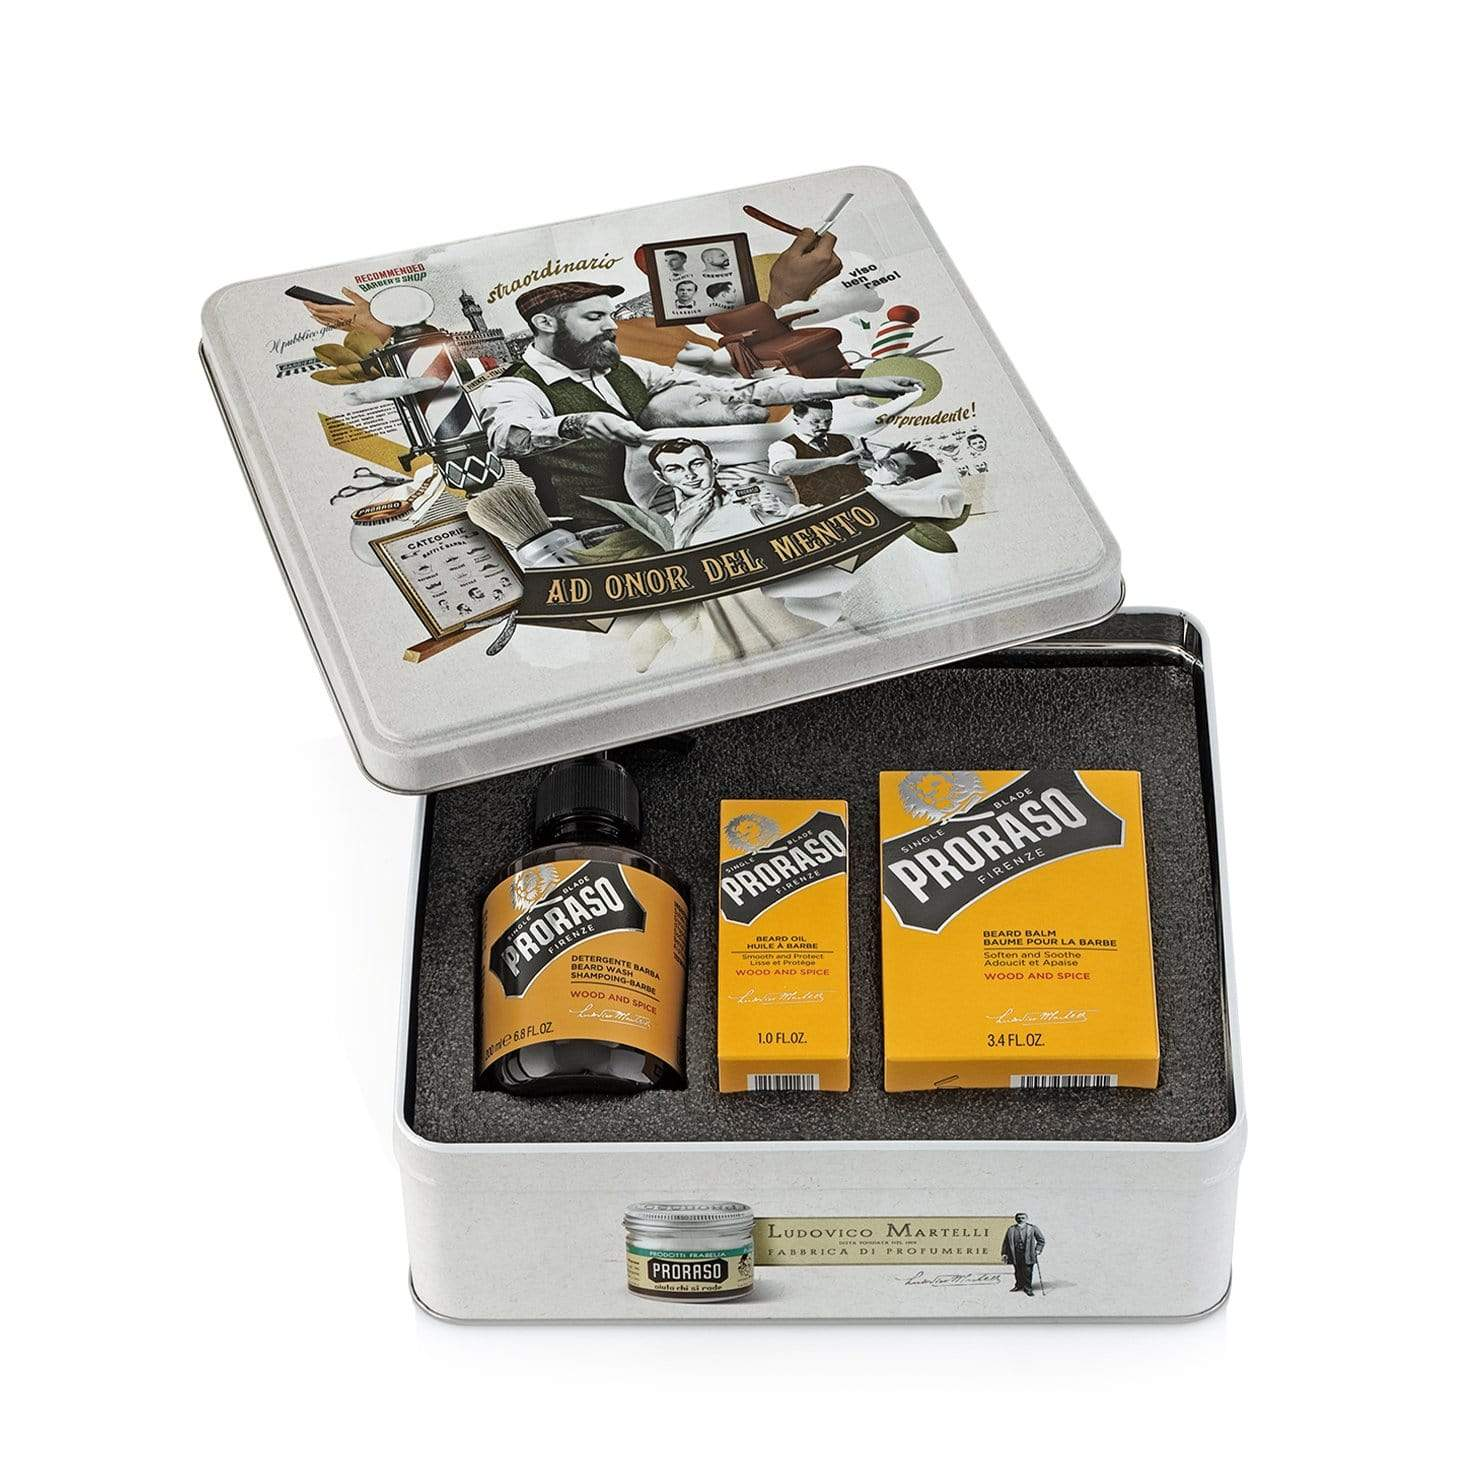 Proraso Wood + Spice Gift Set